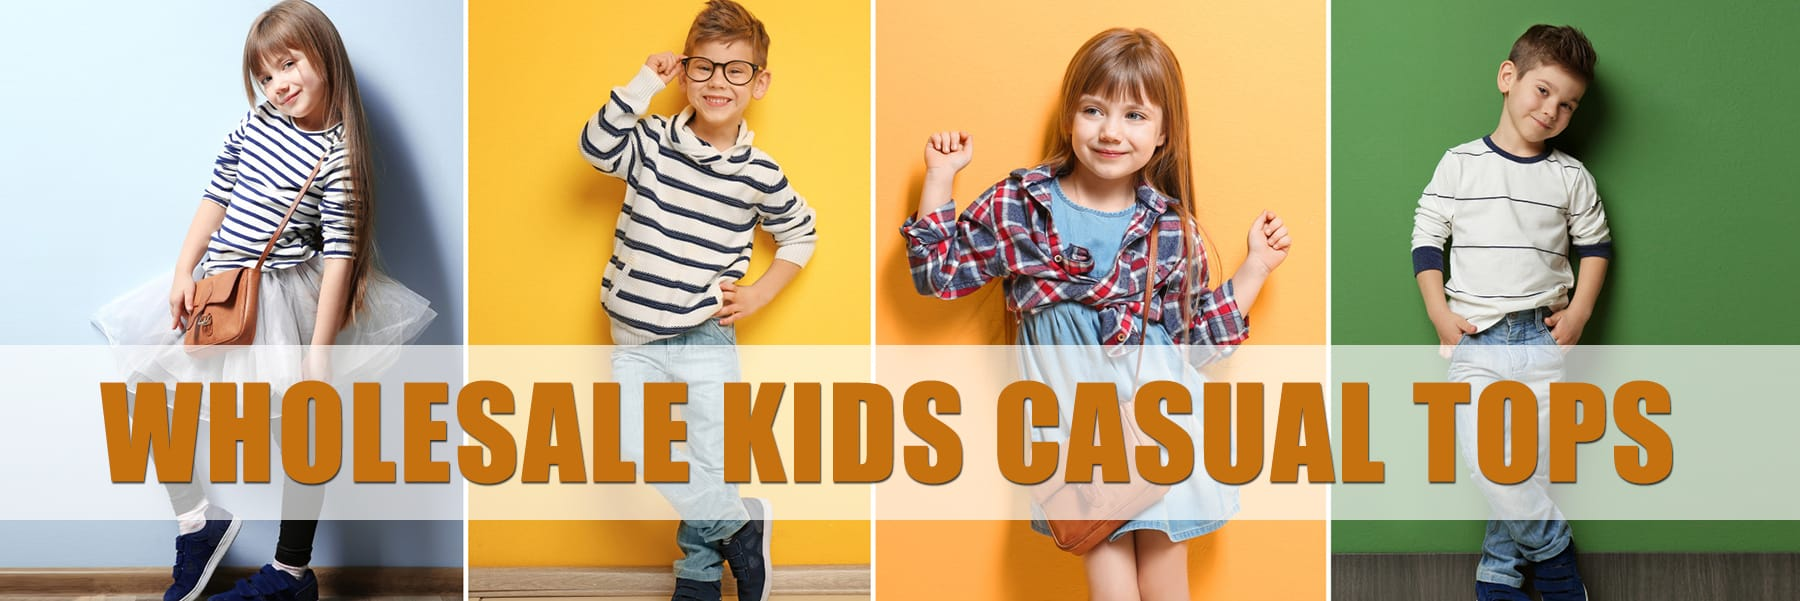 Wholesale Kids Casual Tops